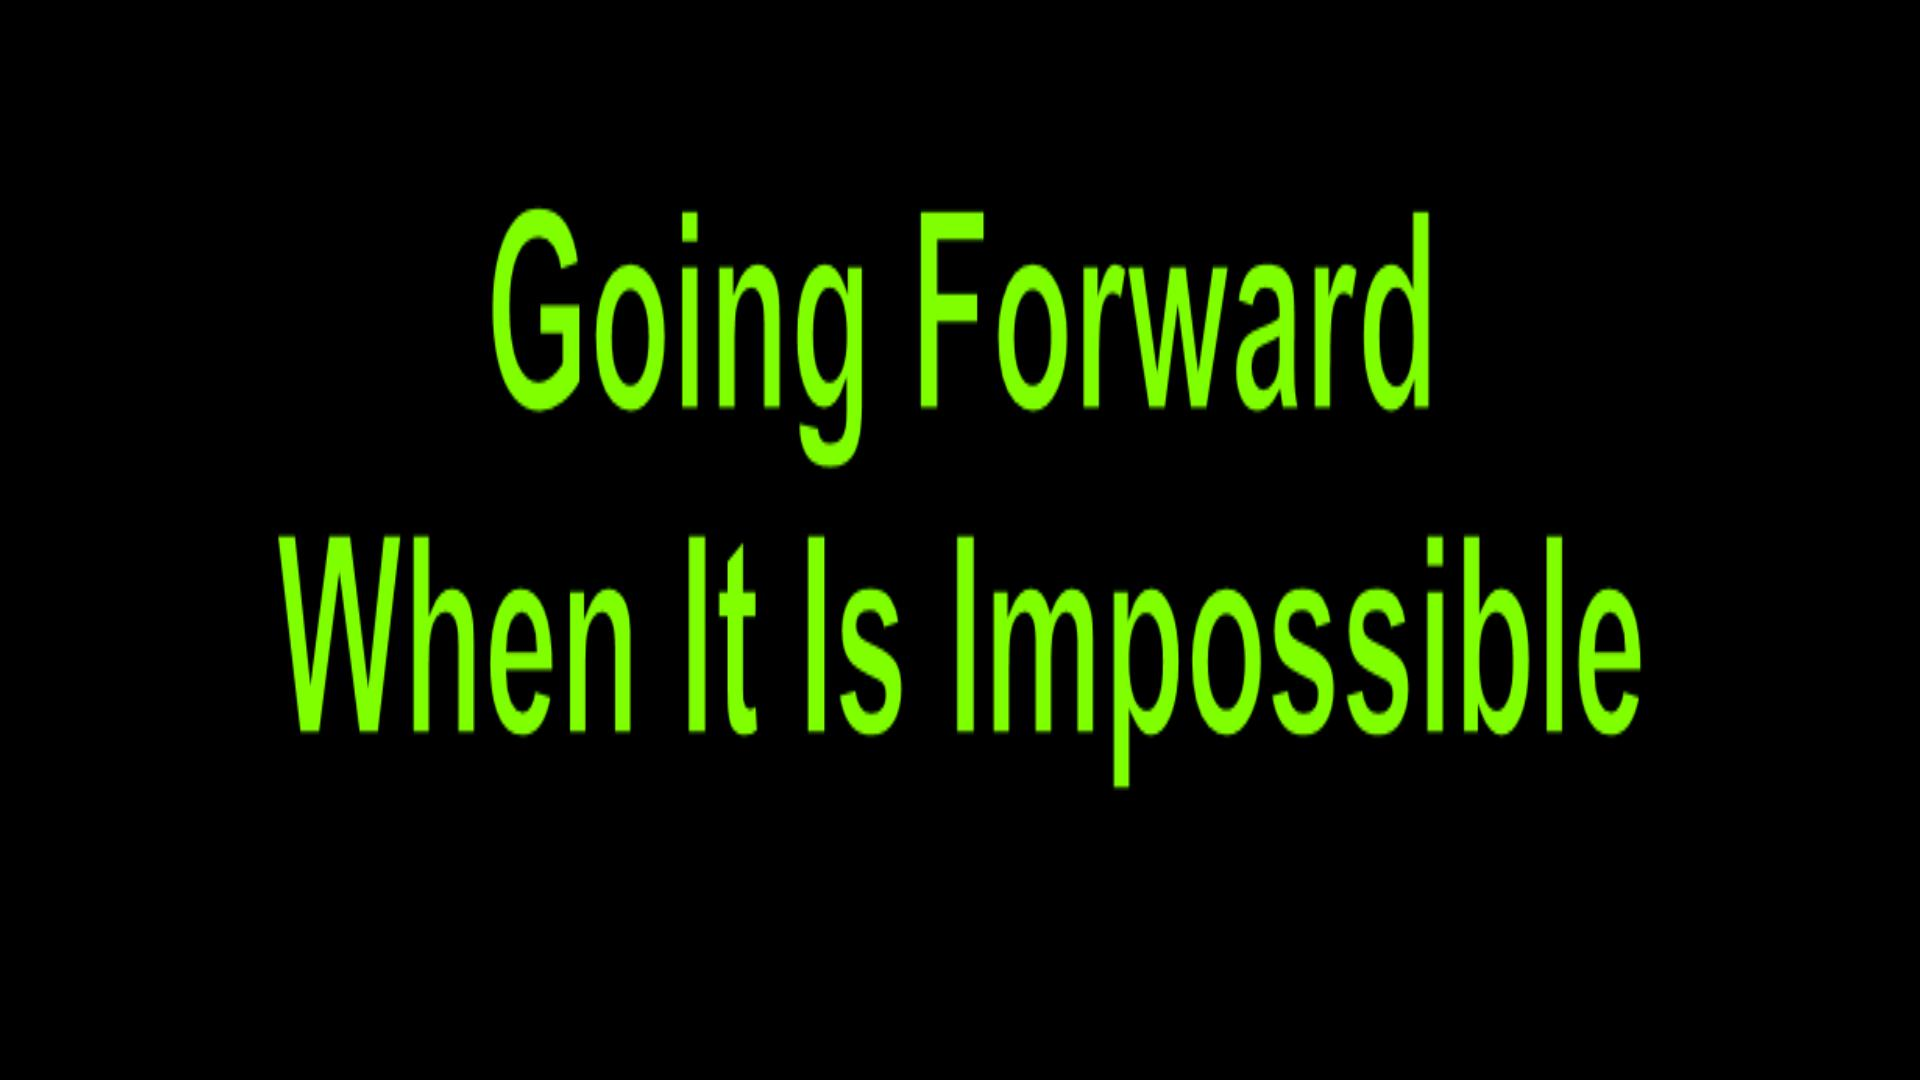 Going Forward When It Is Impossible